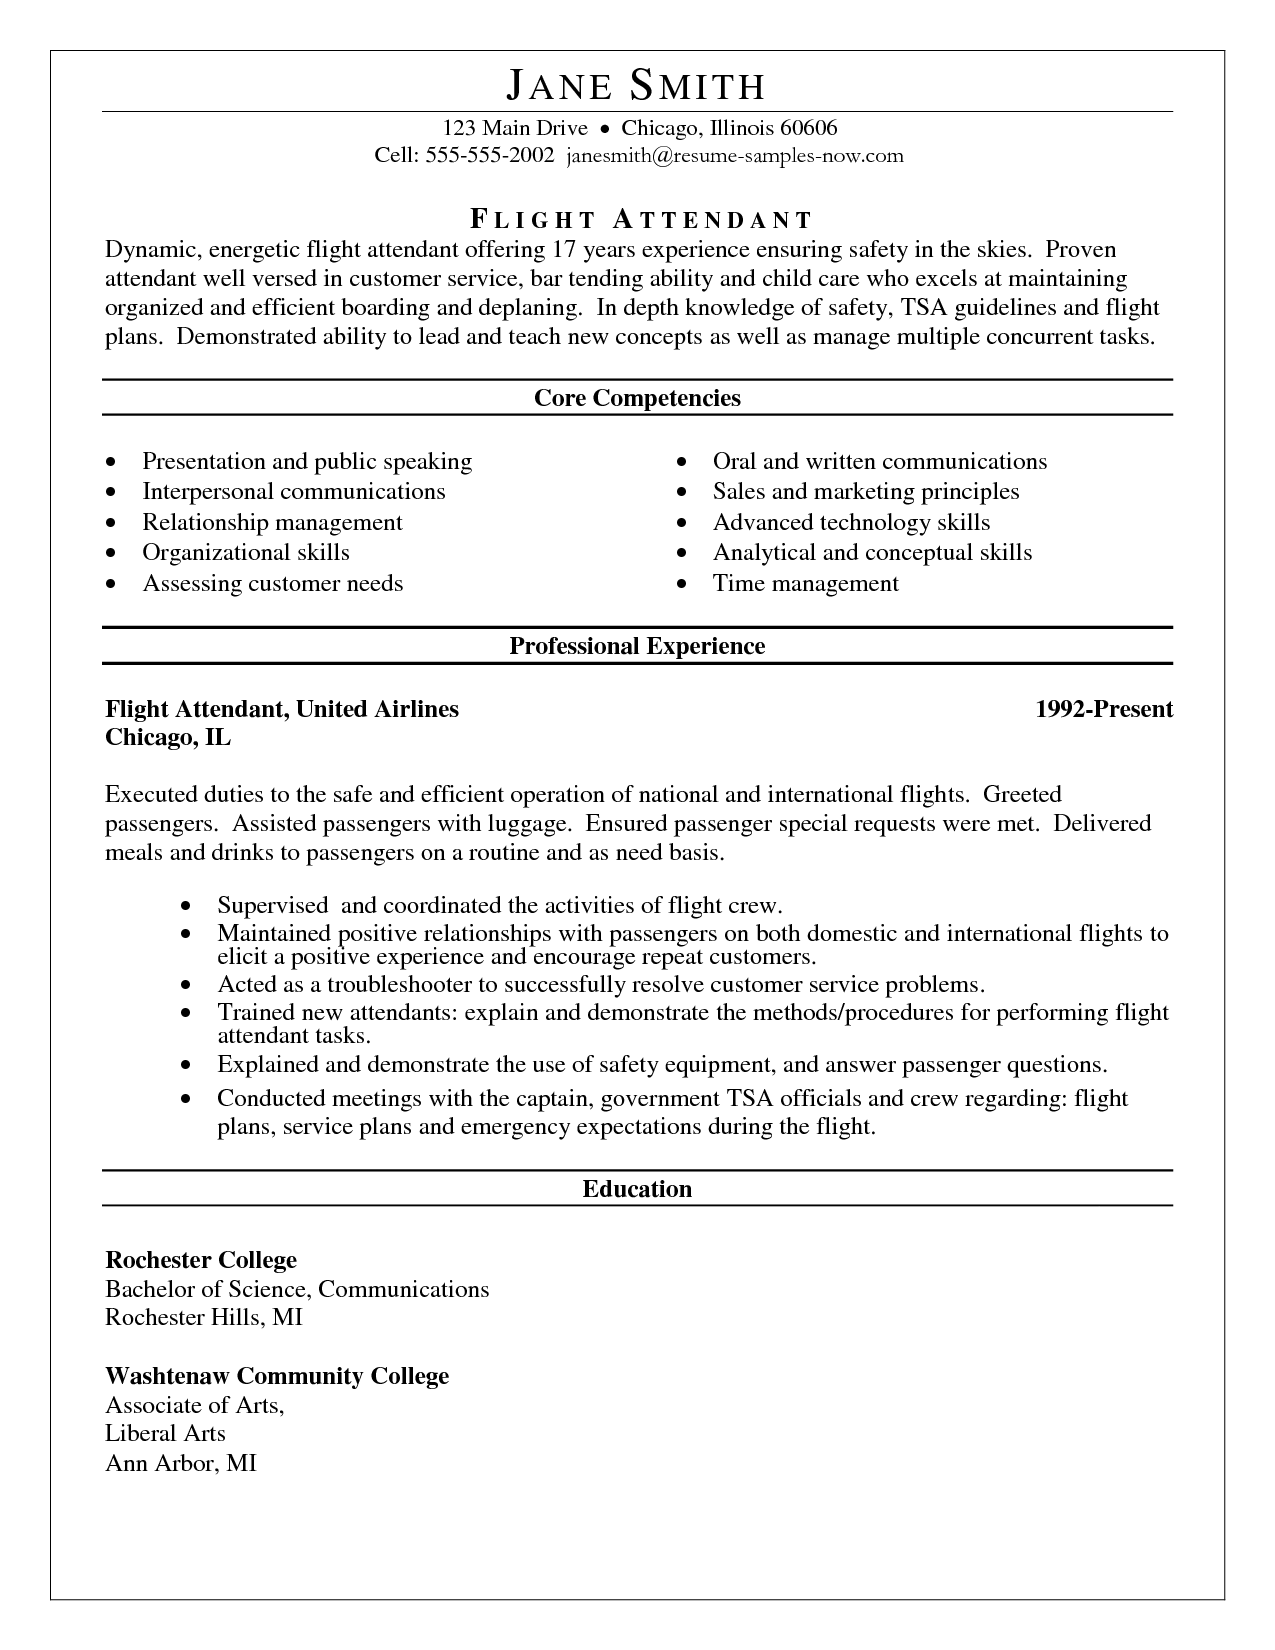 core qualifications resume